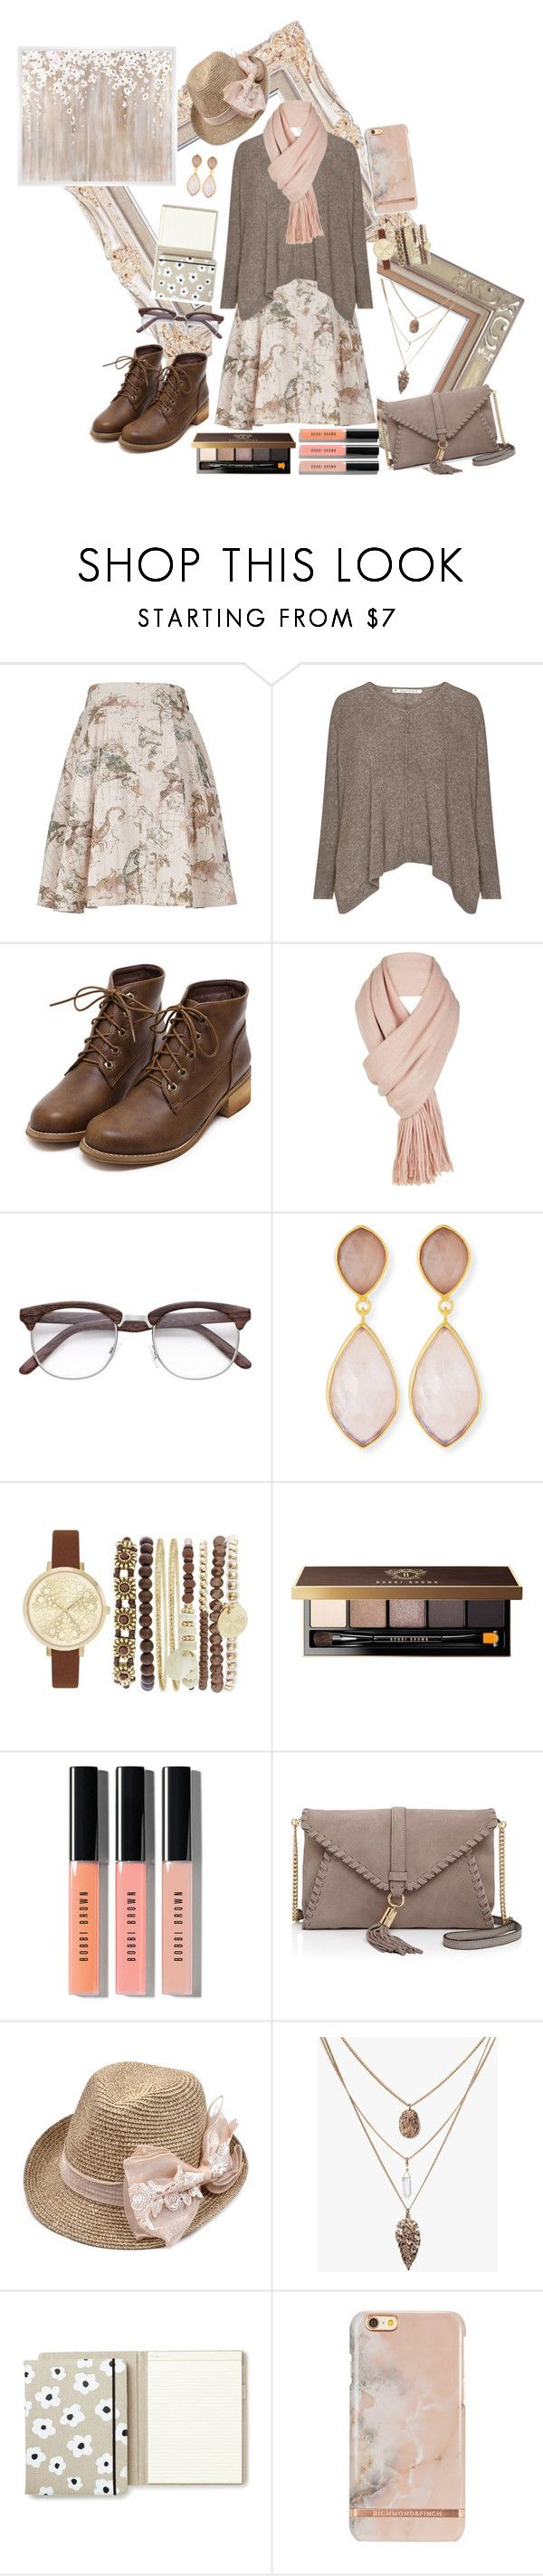 """""""Not-boring Beige."""" by caro-lion ❤ liked on Polyvore featuring Melissa McCarthy Seven7, Free People, Dina Mackney, Jessica Carlyle, Bobbi Brown Cosmetics, Milly, Kate Spade, PTM Images and plus size clothing"""